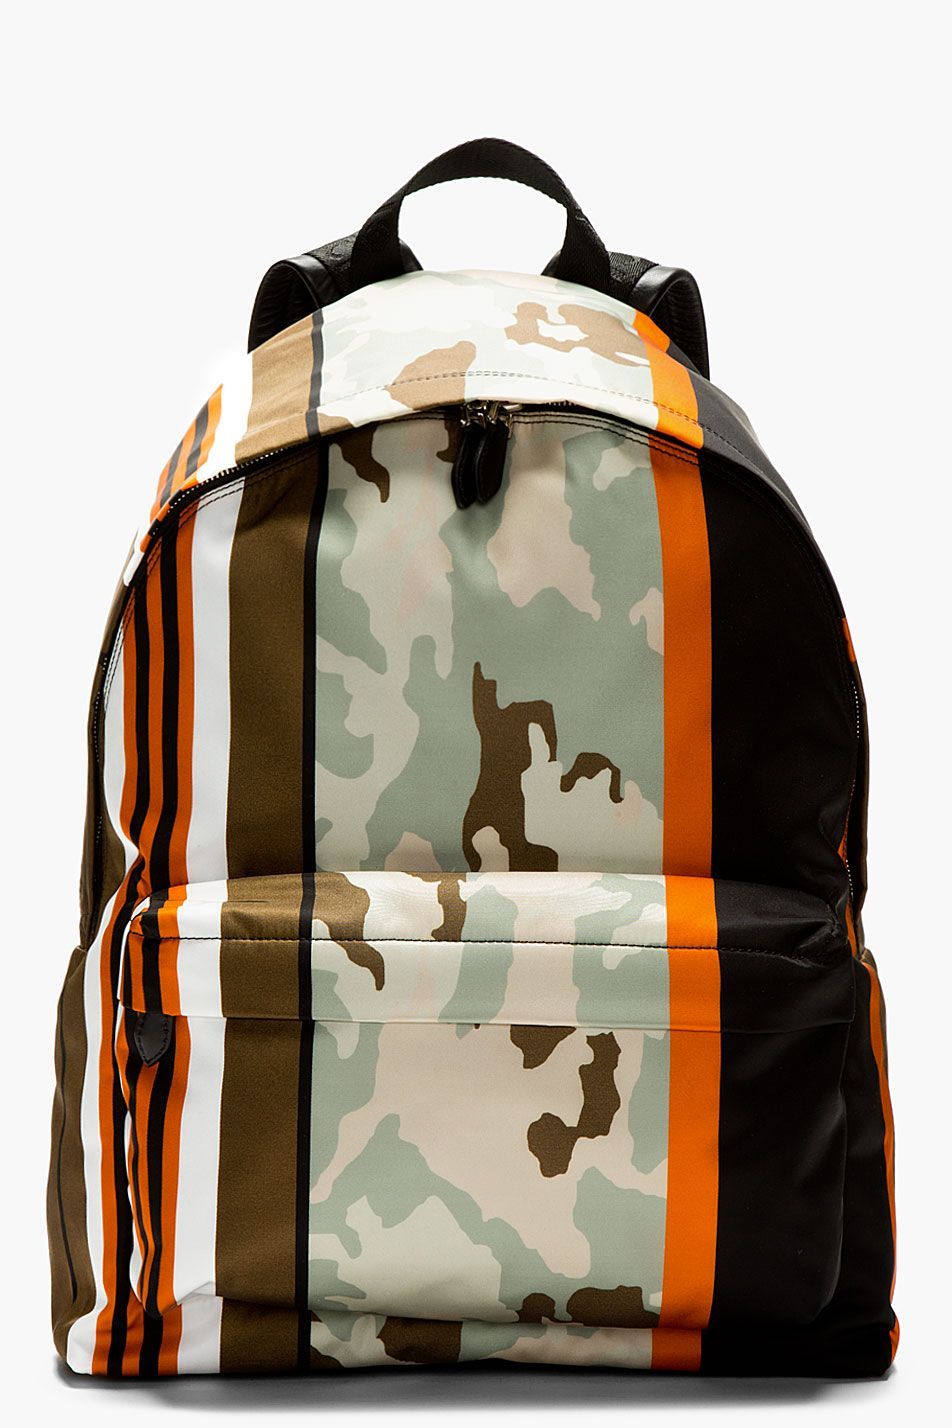 GIVENCHY Mint   orange printed CAMO BACKPACK   S P O R T S T Y L E ... 64162995f5